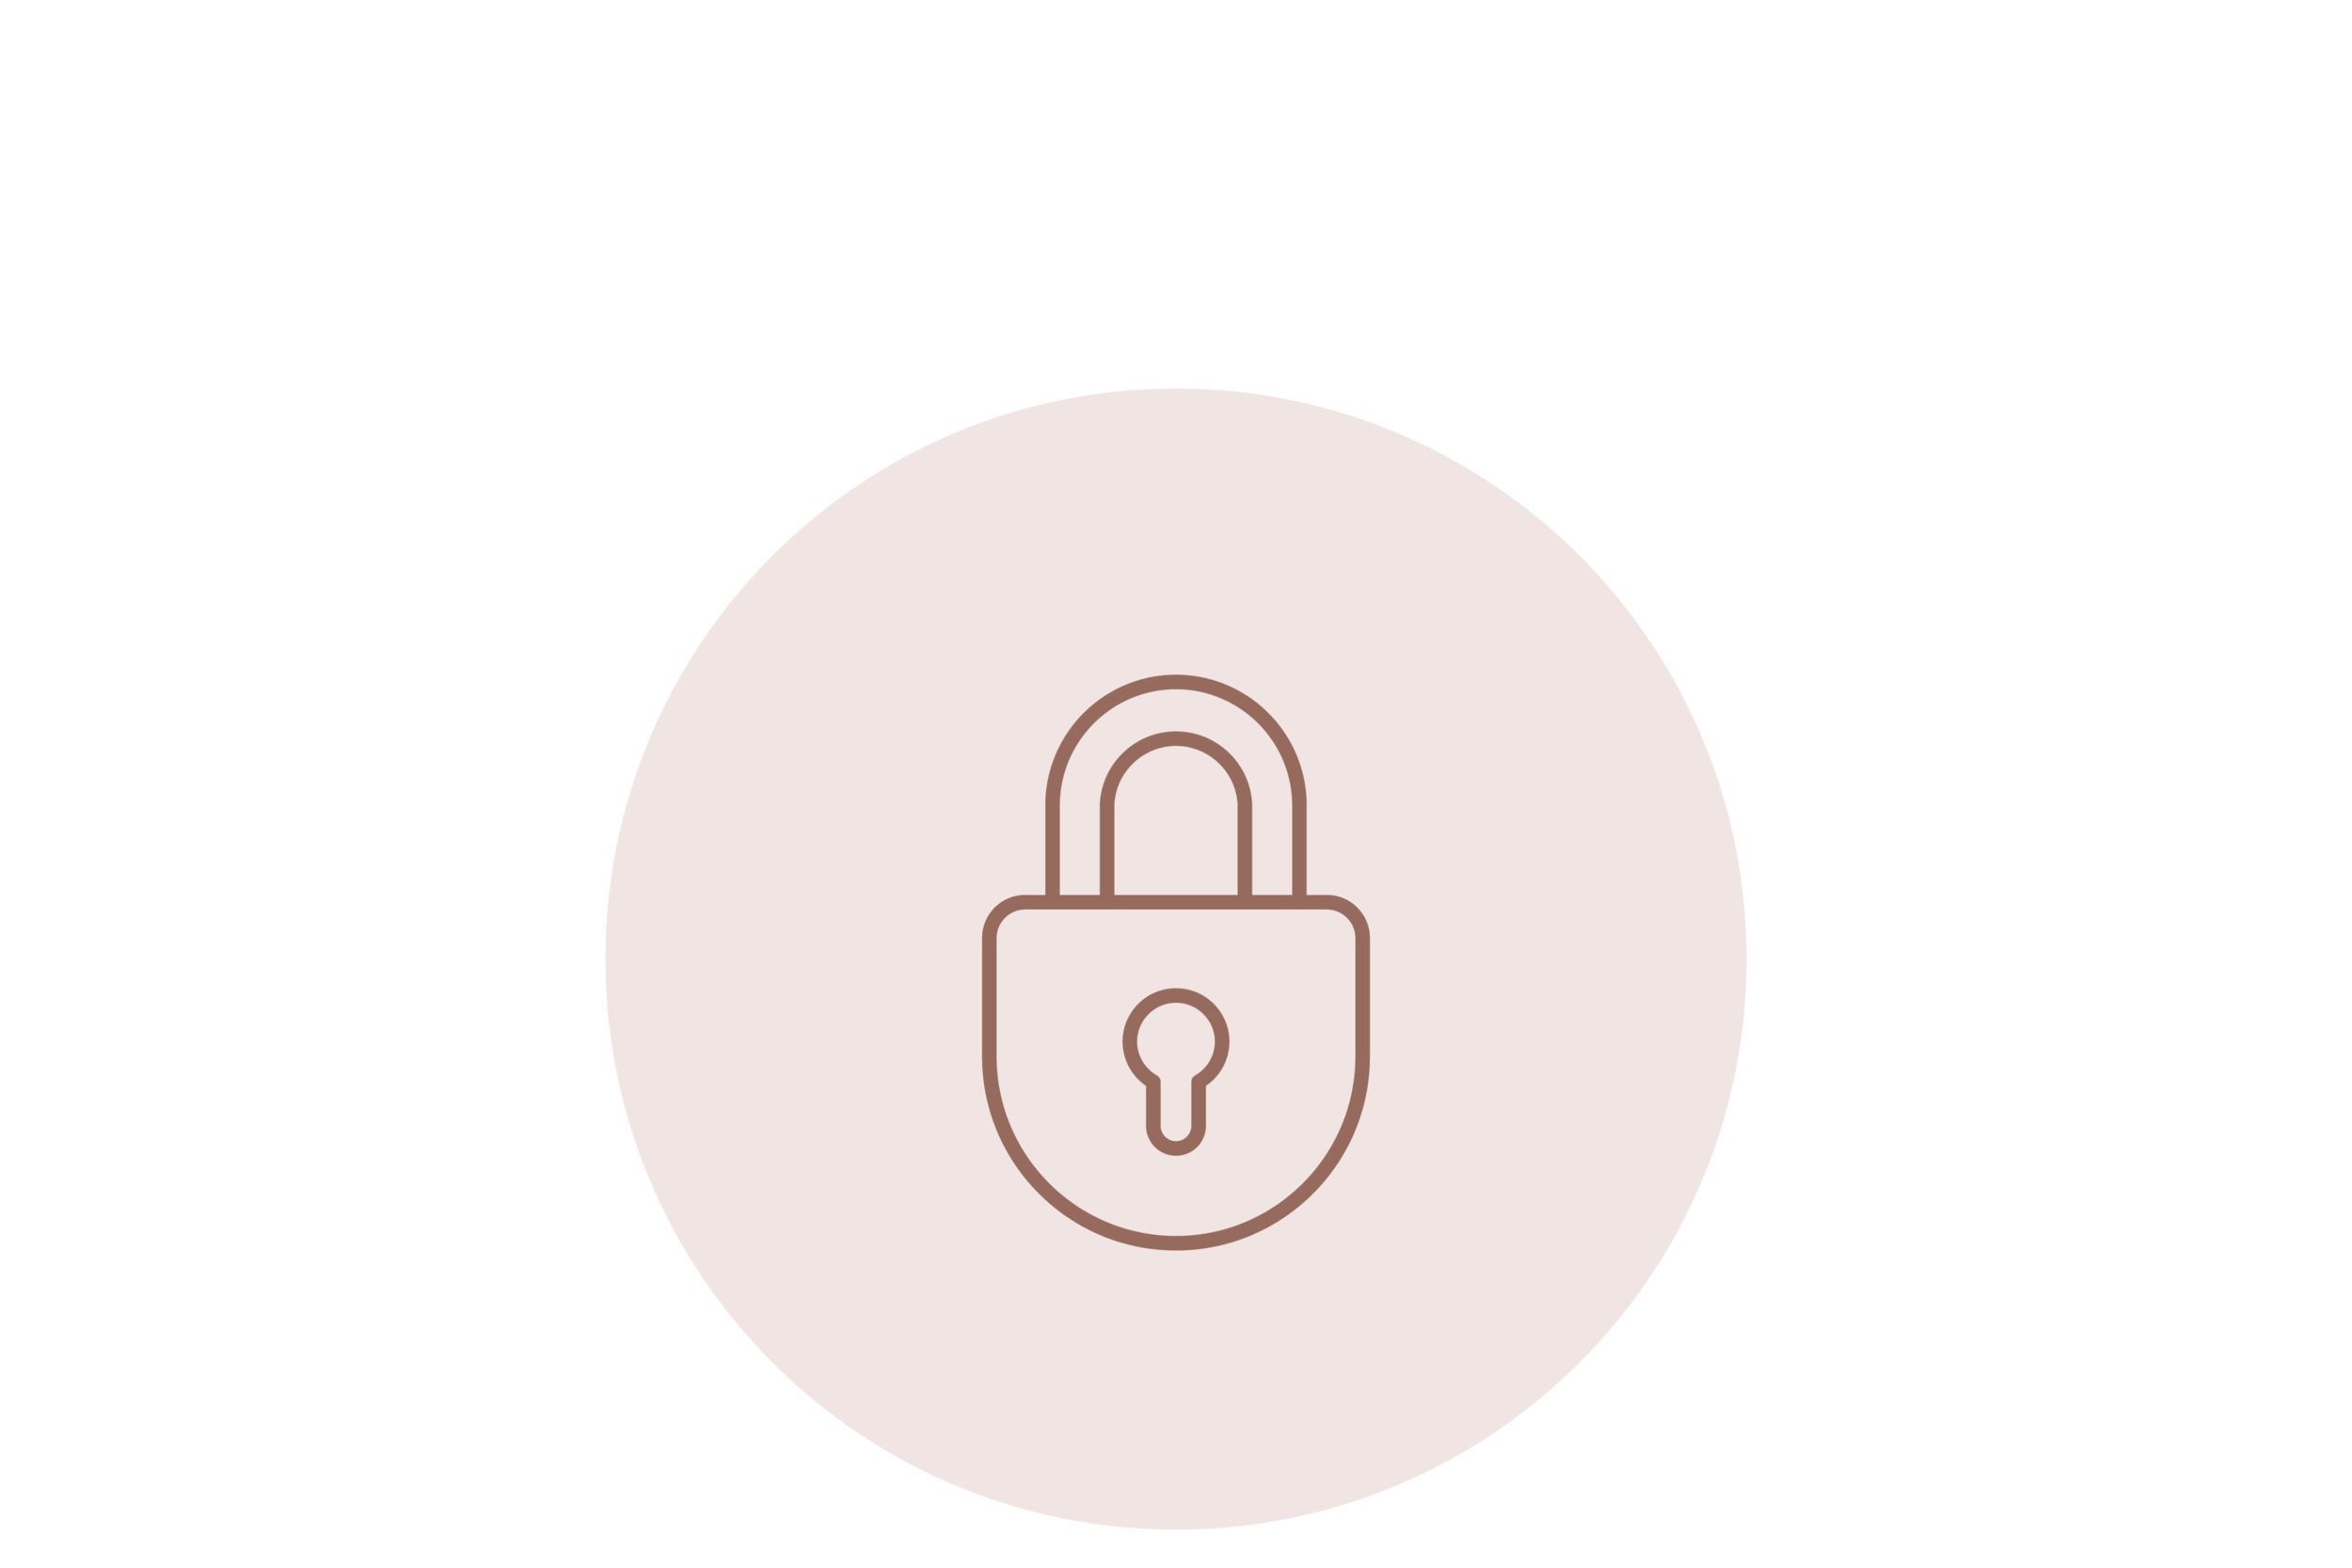 Lockicon-12.png